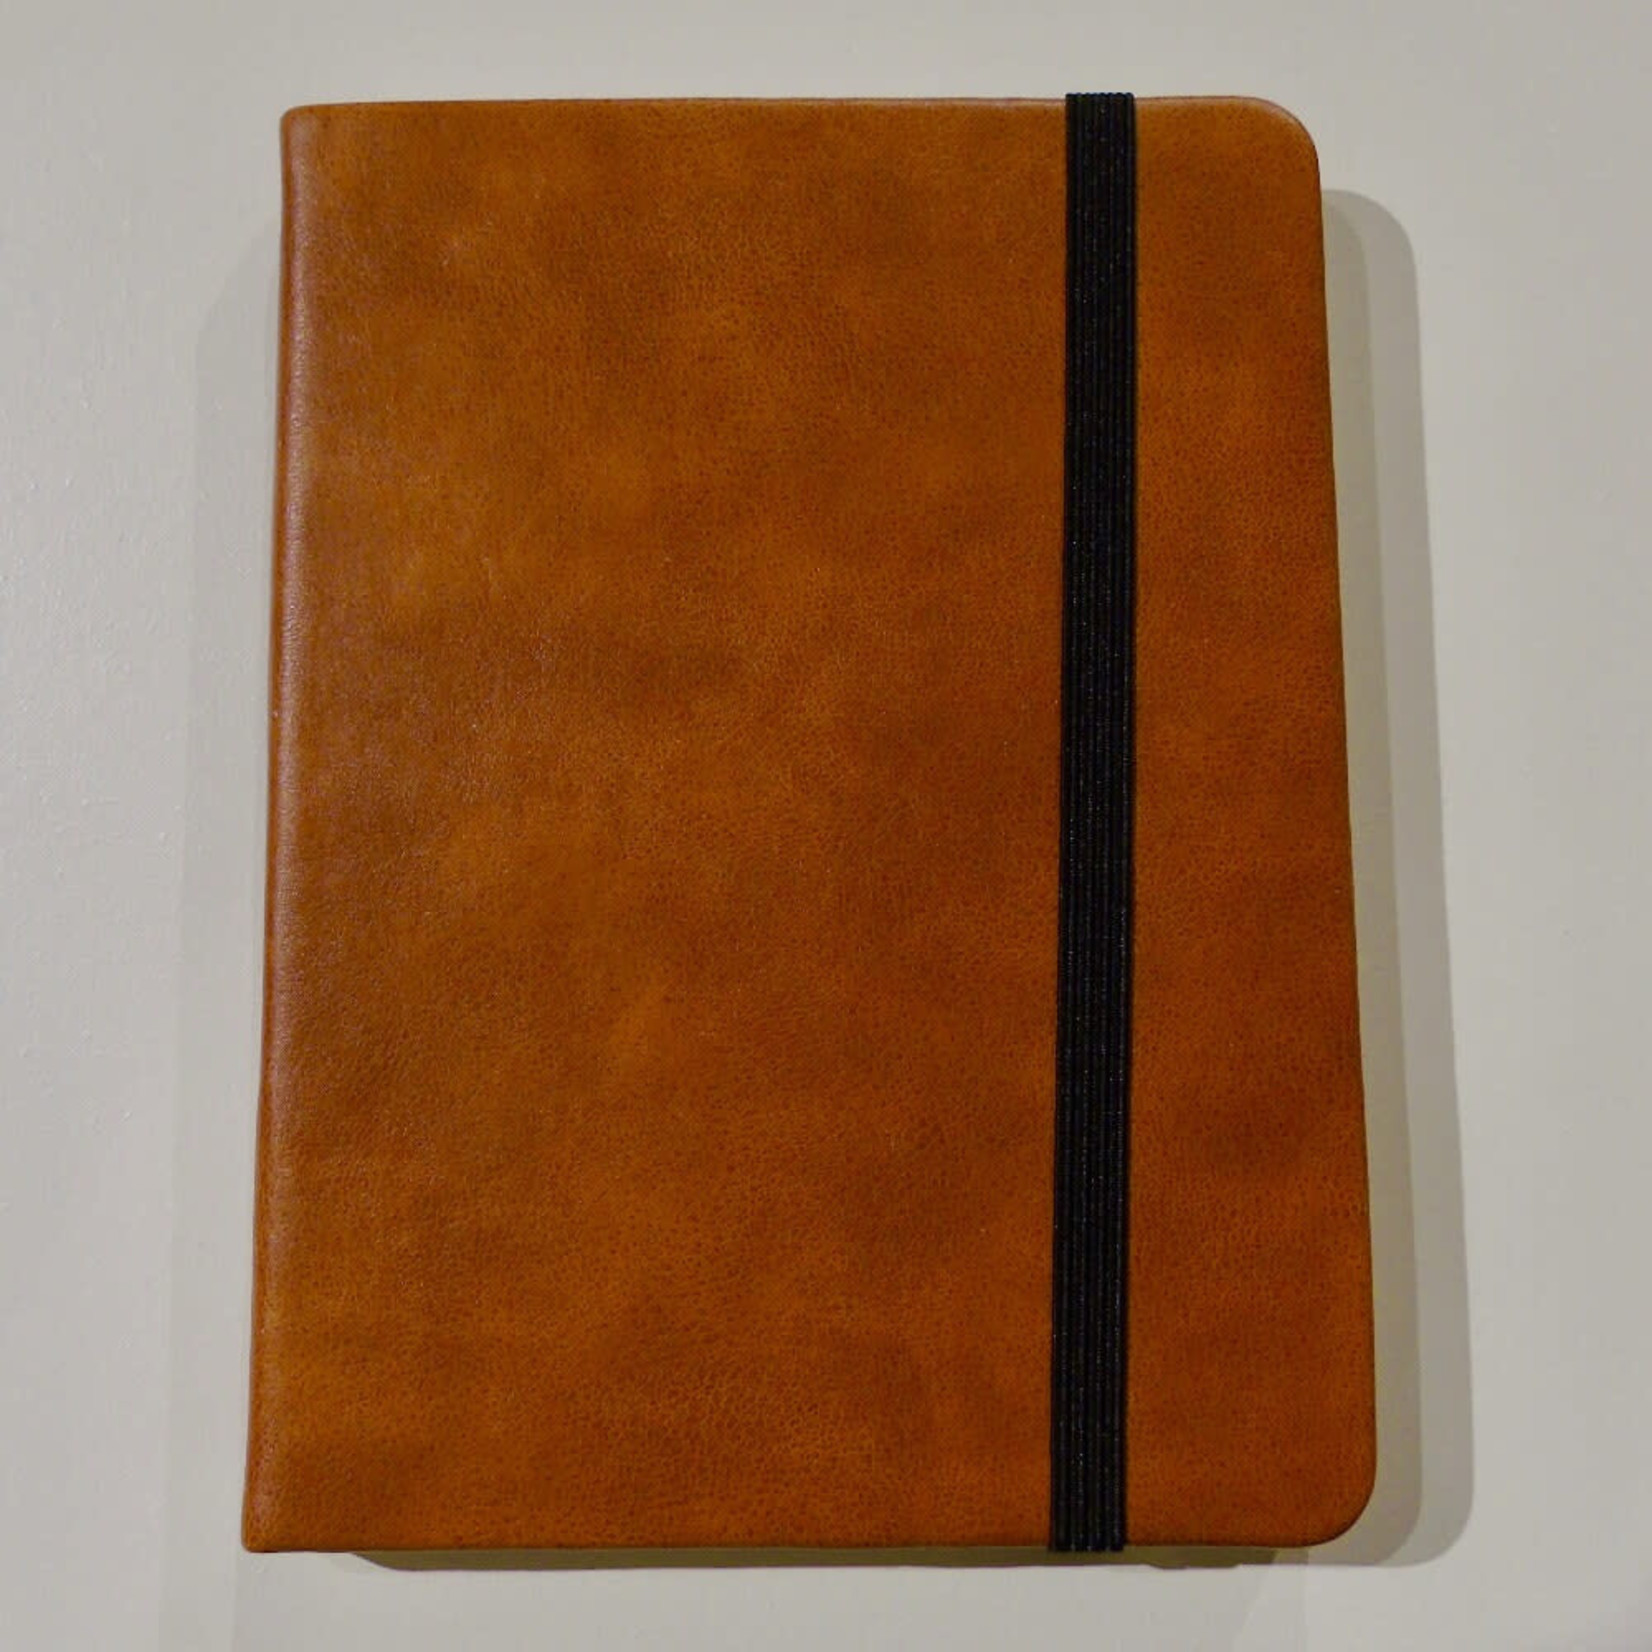 Large Journal - Brown 8.25x5.25""